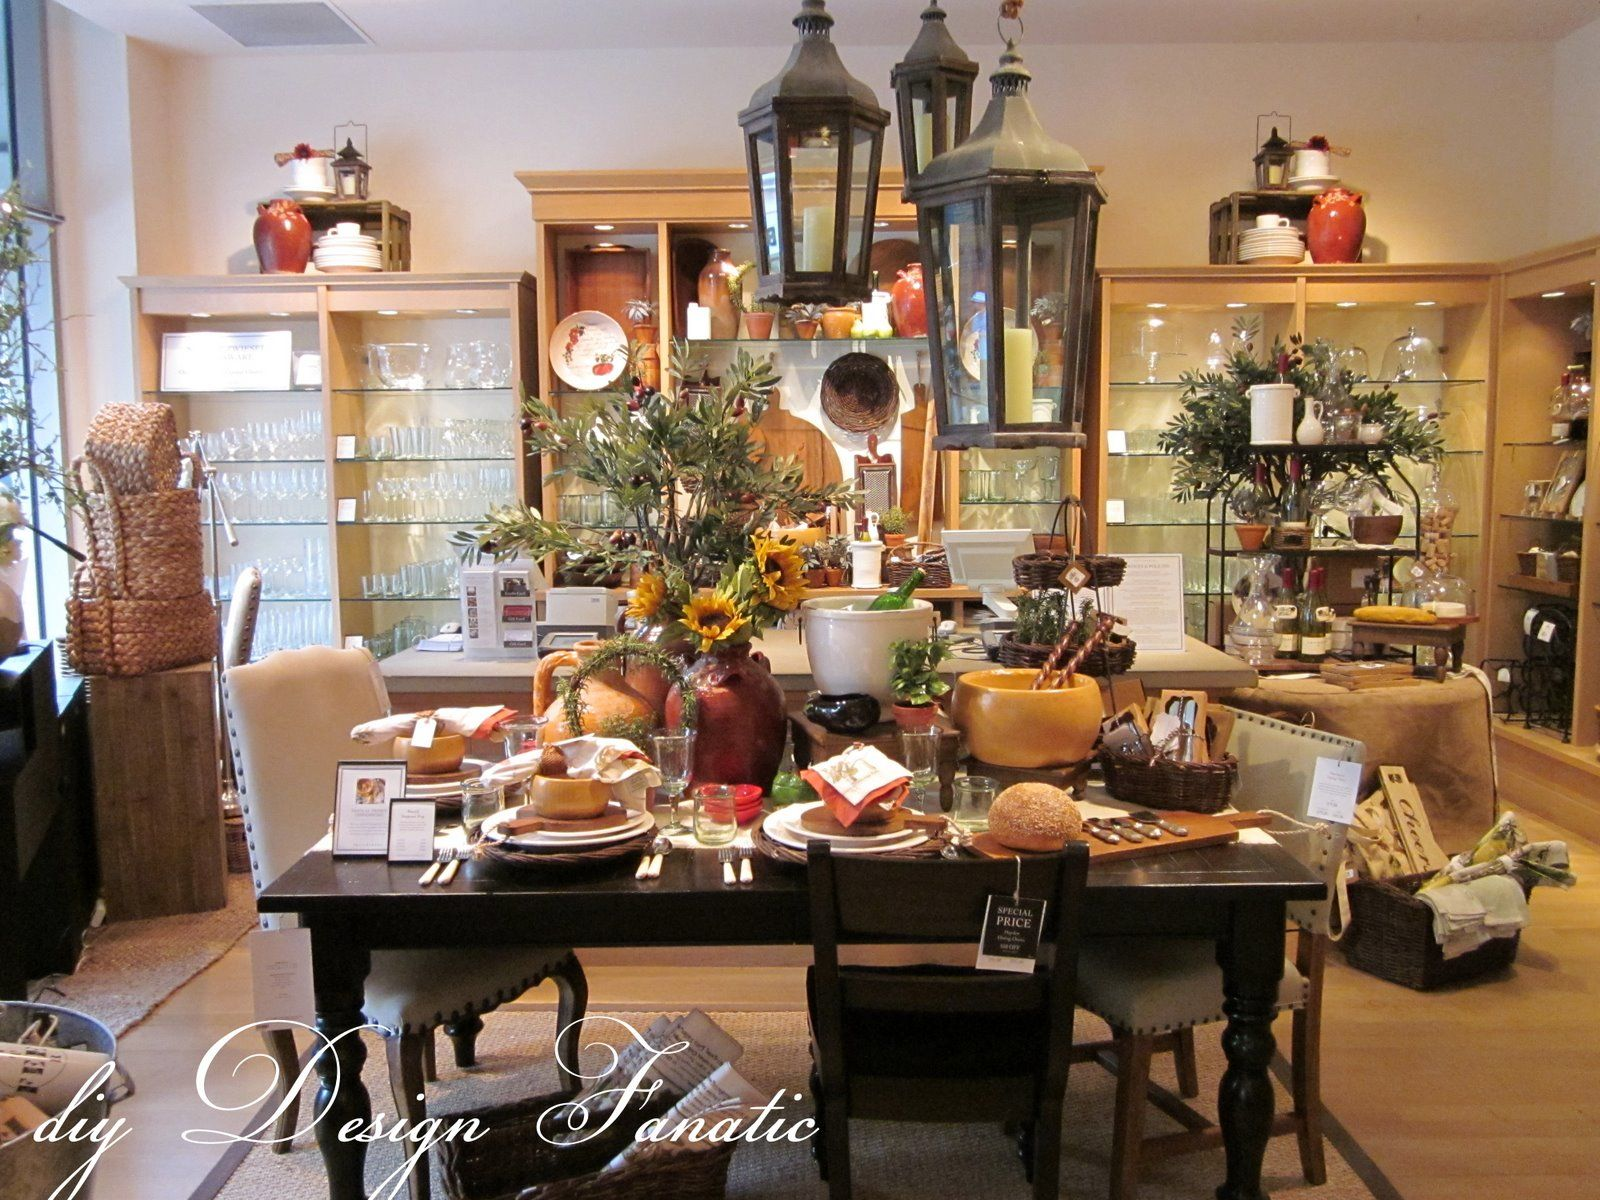 Pottery Barn Inspiration | Pottery barn fall and Halloween ideas